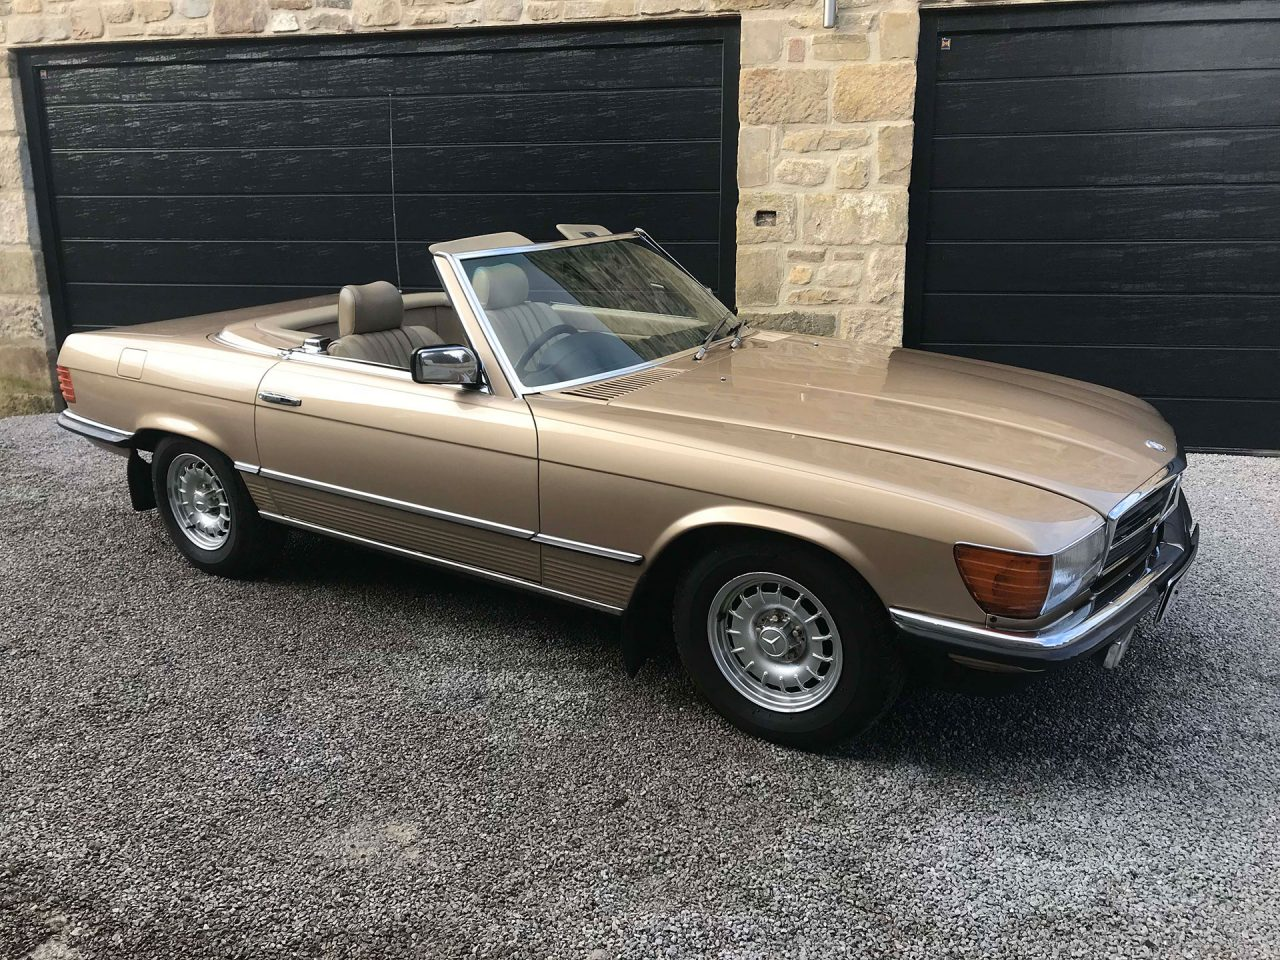 Mercedez Benz 280 SL